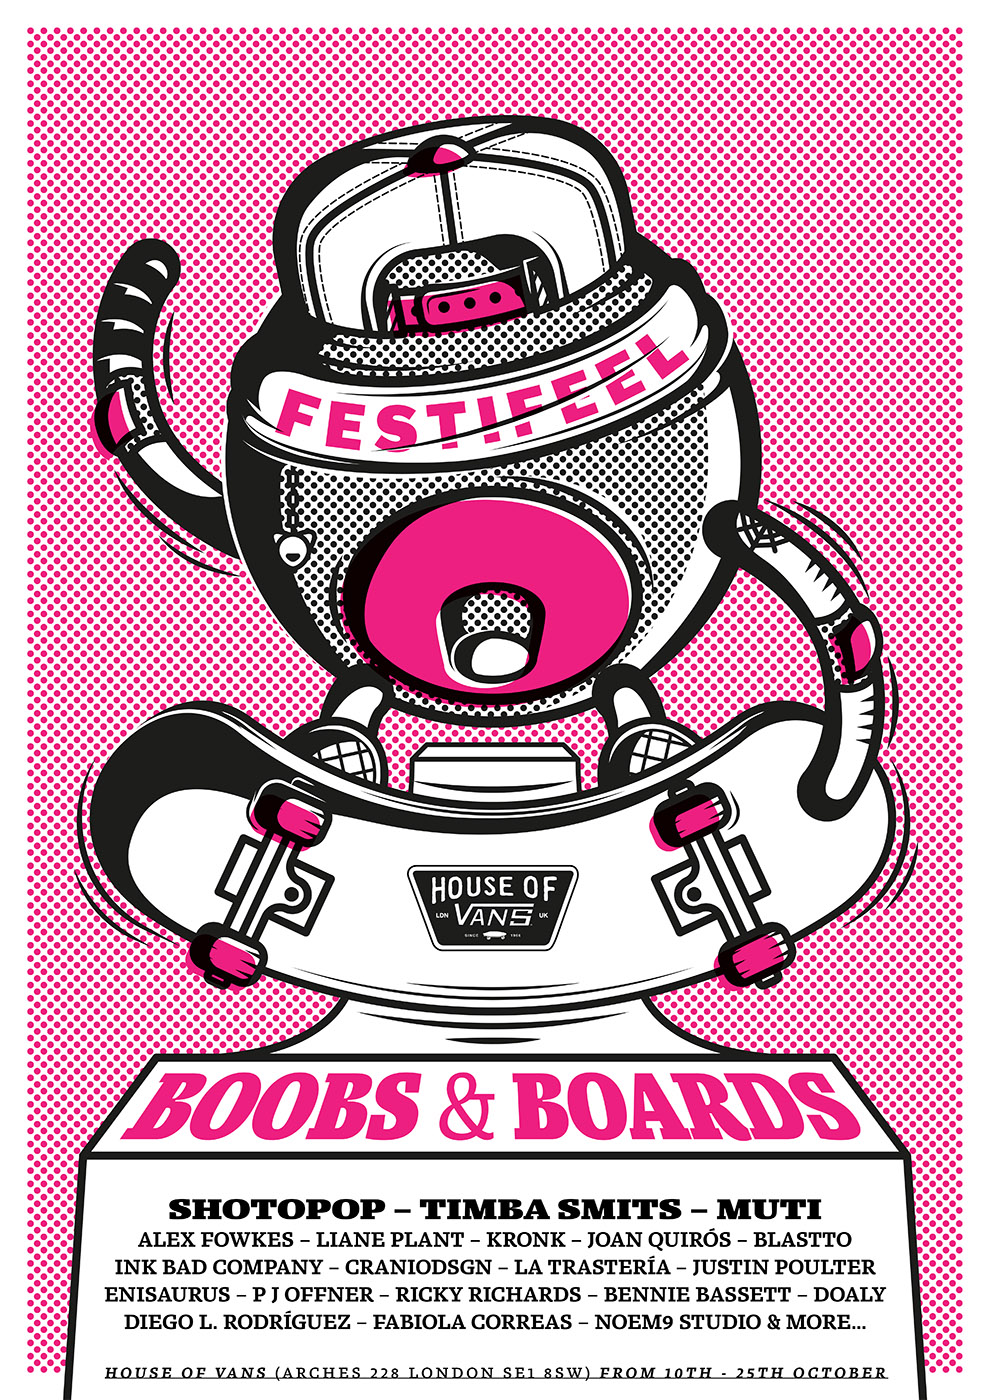 Boobs_Boards_Poster.jpg